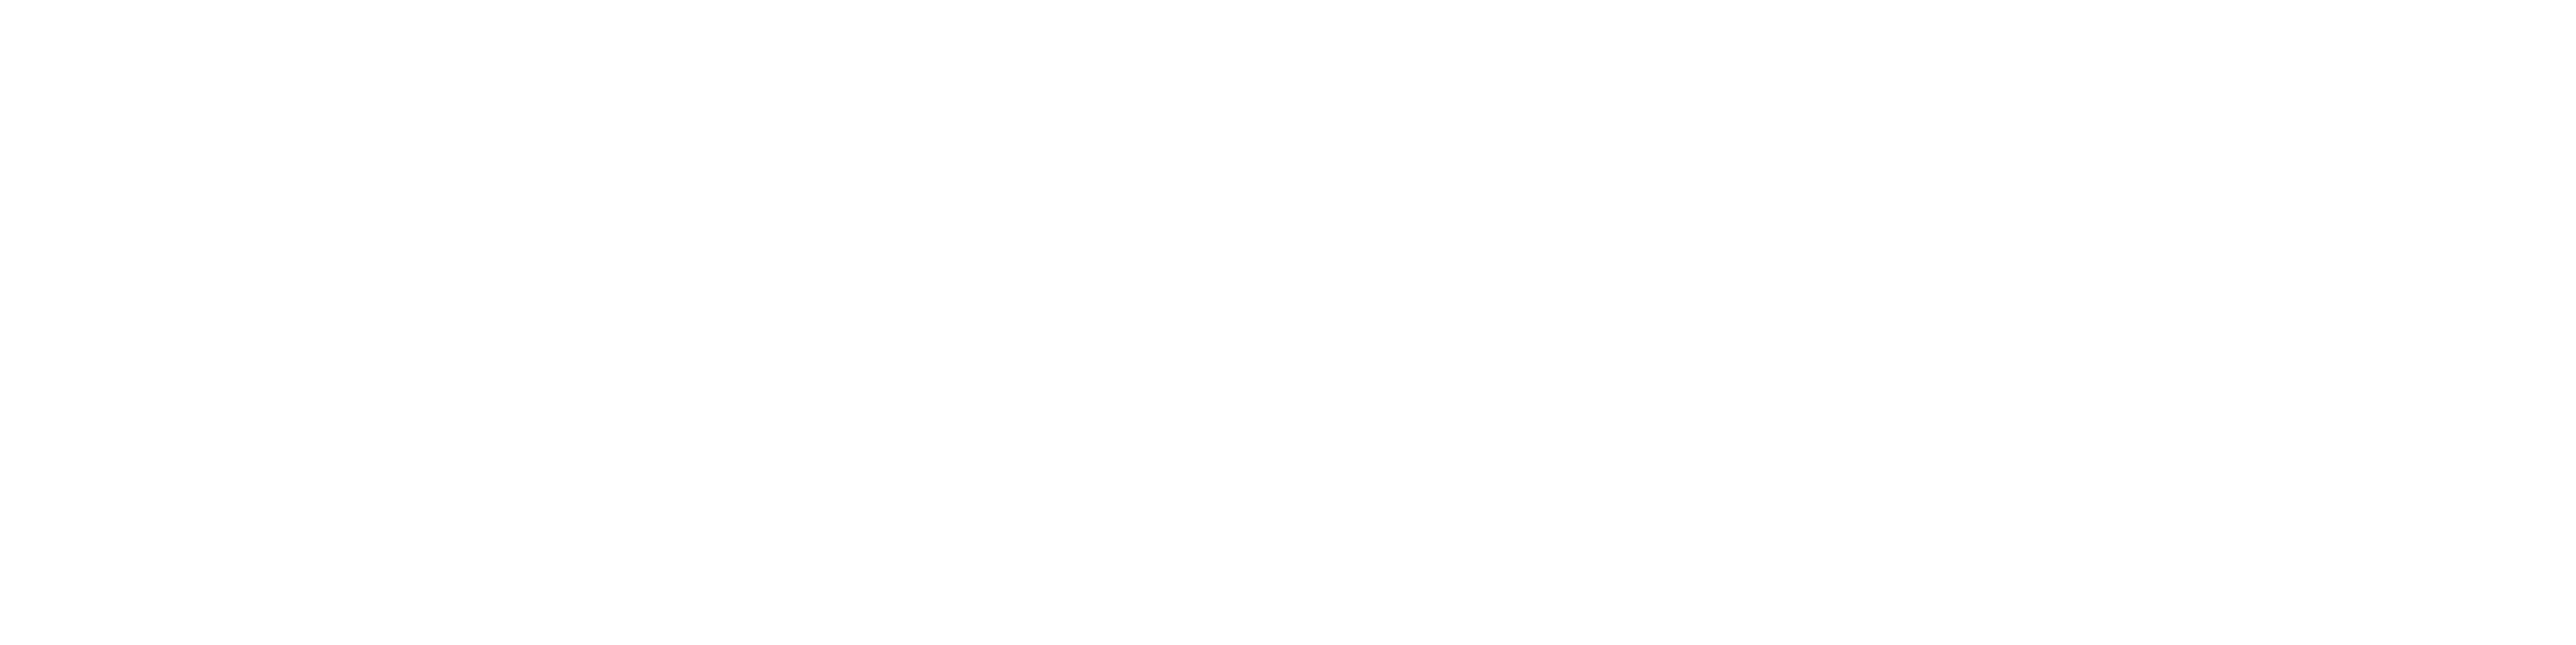 Empire Auto Collection